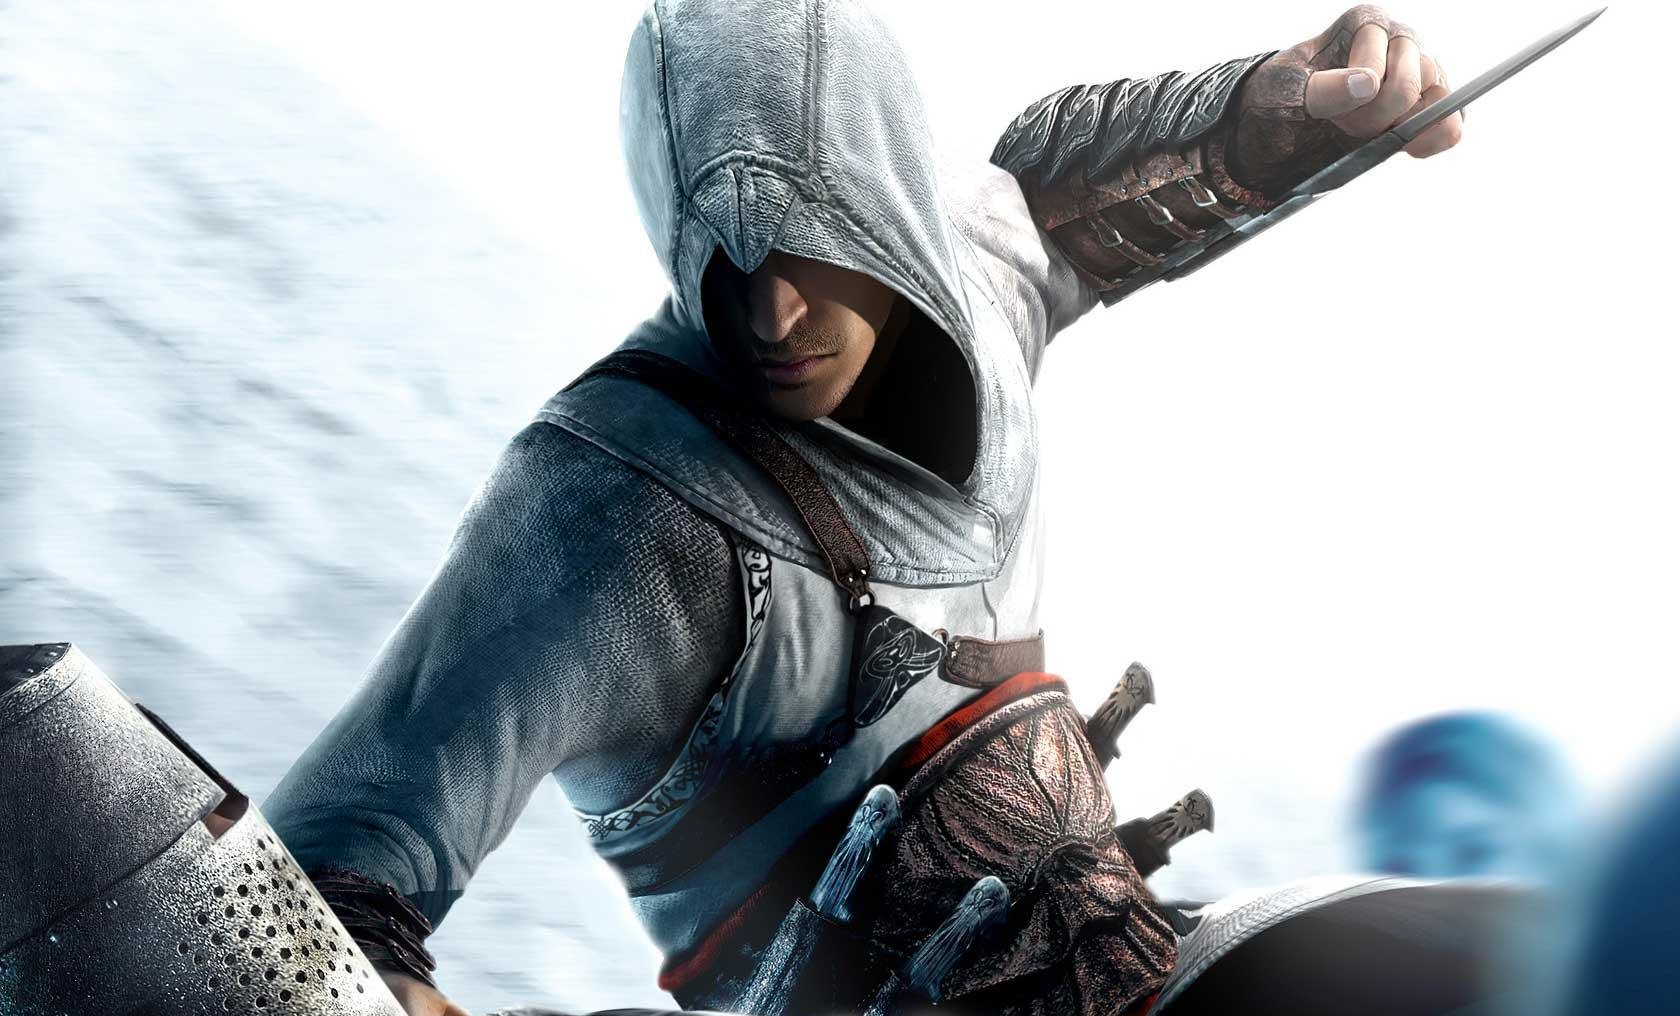 �� Happy birthday to the legendary Assassin, Altaïr Ibn-La'Ahad! https://t.co/8oE7do8jom